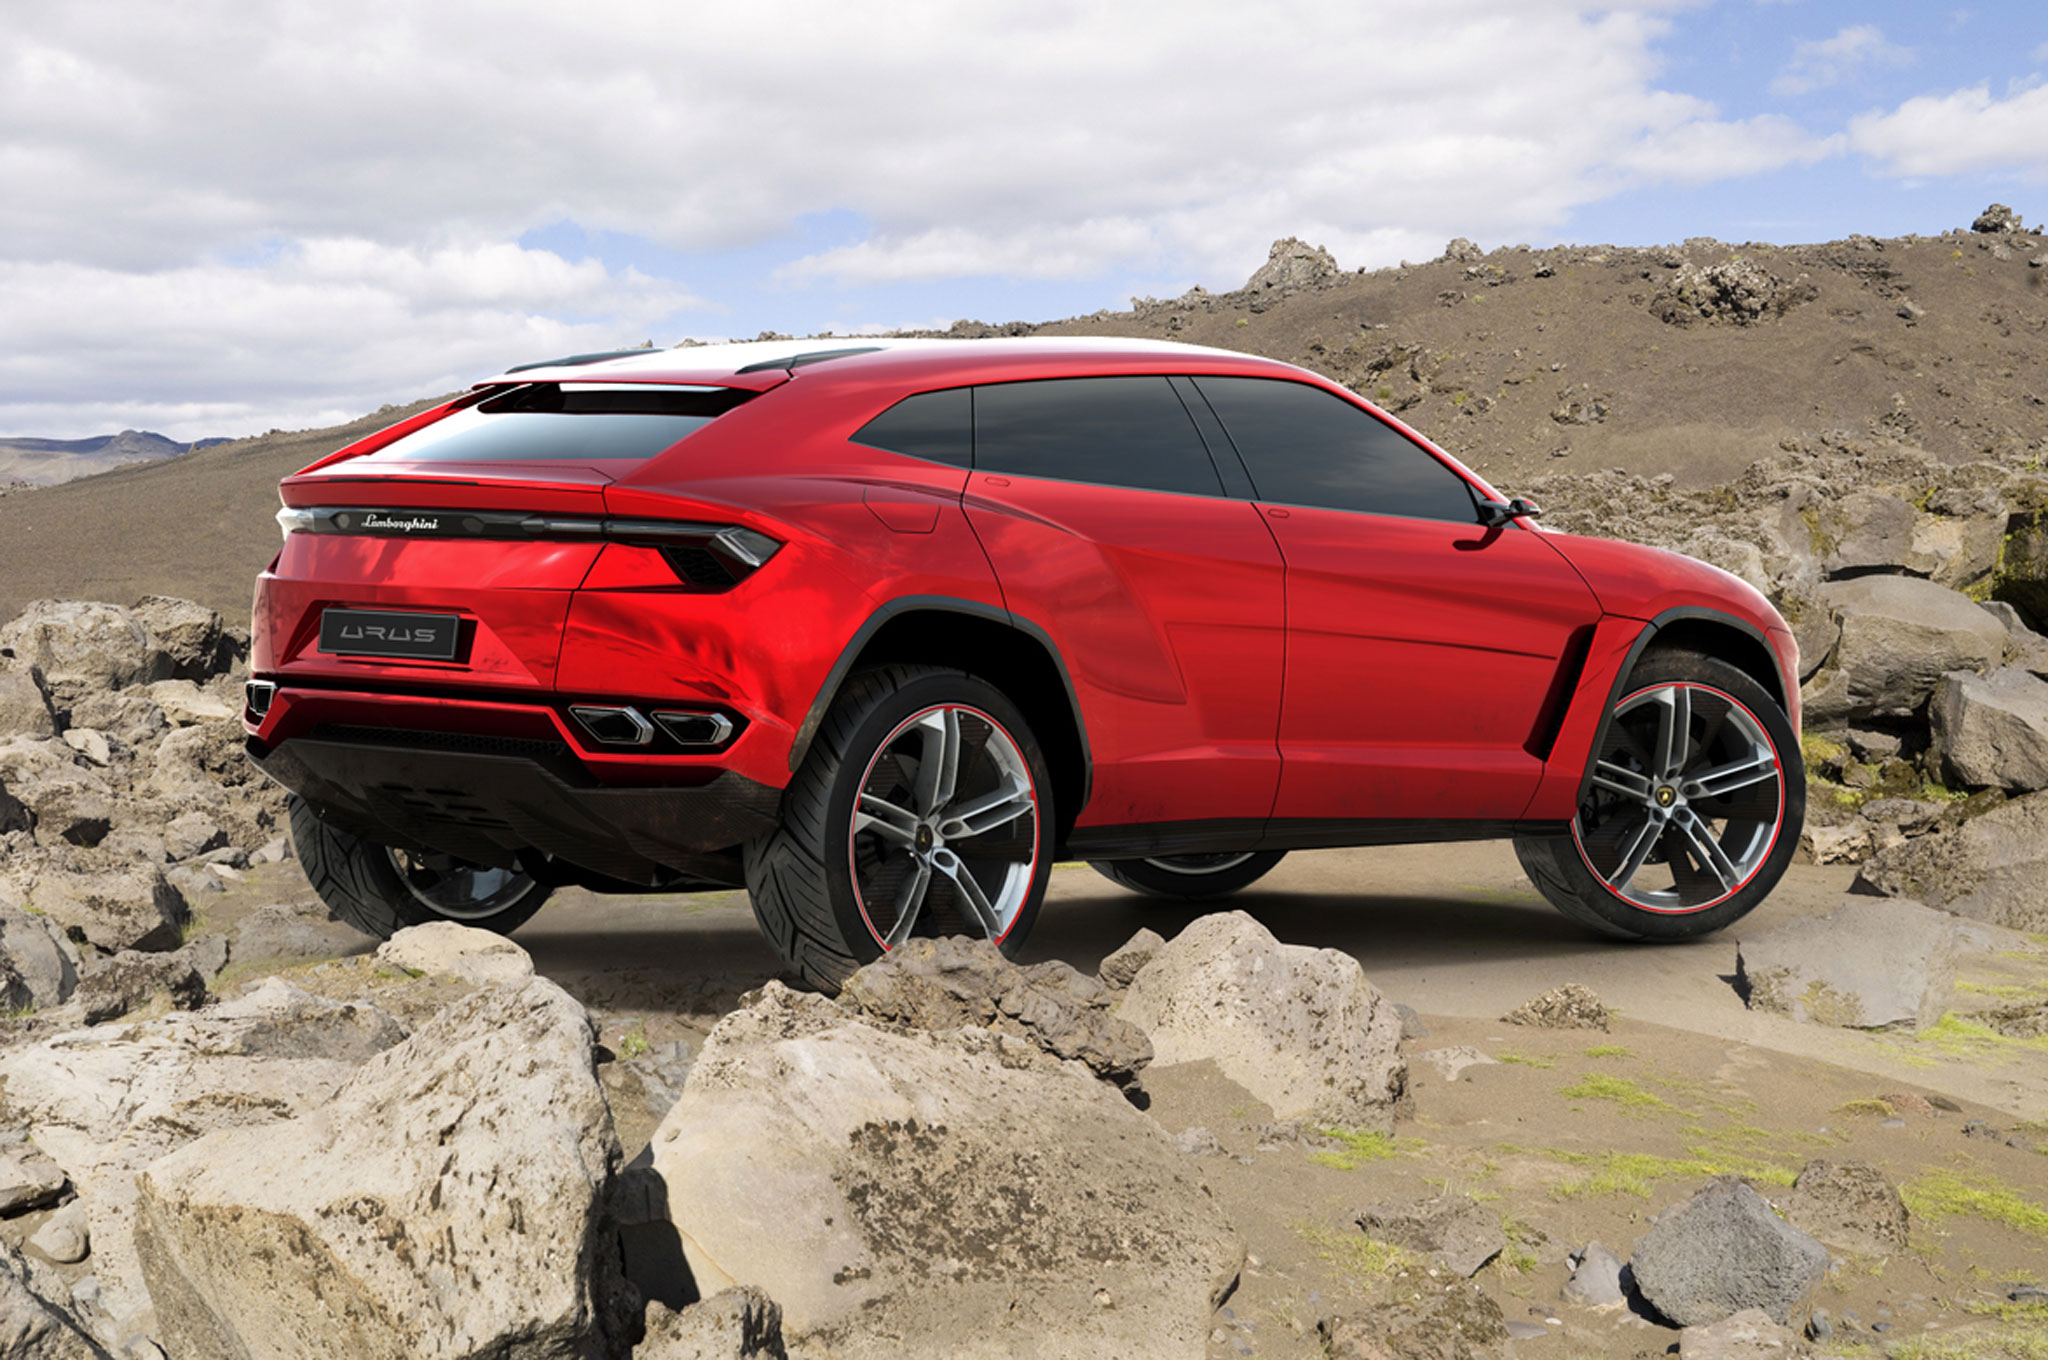 Lamborghini Urus Prototype Right Rear View1